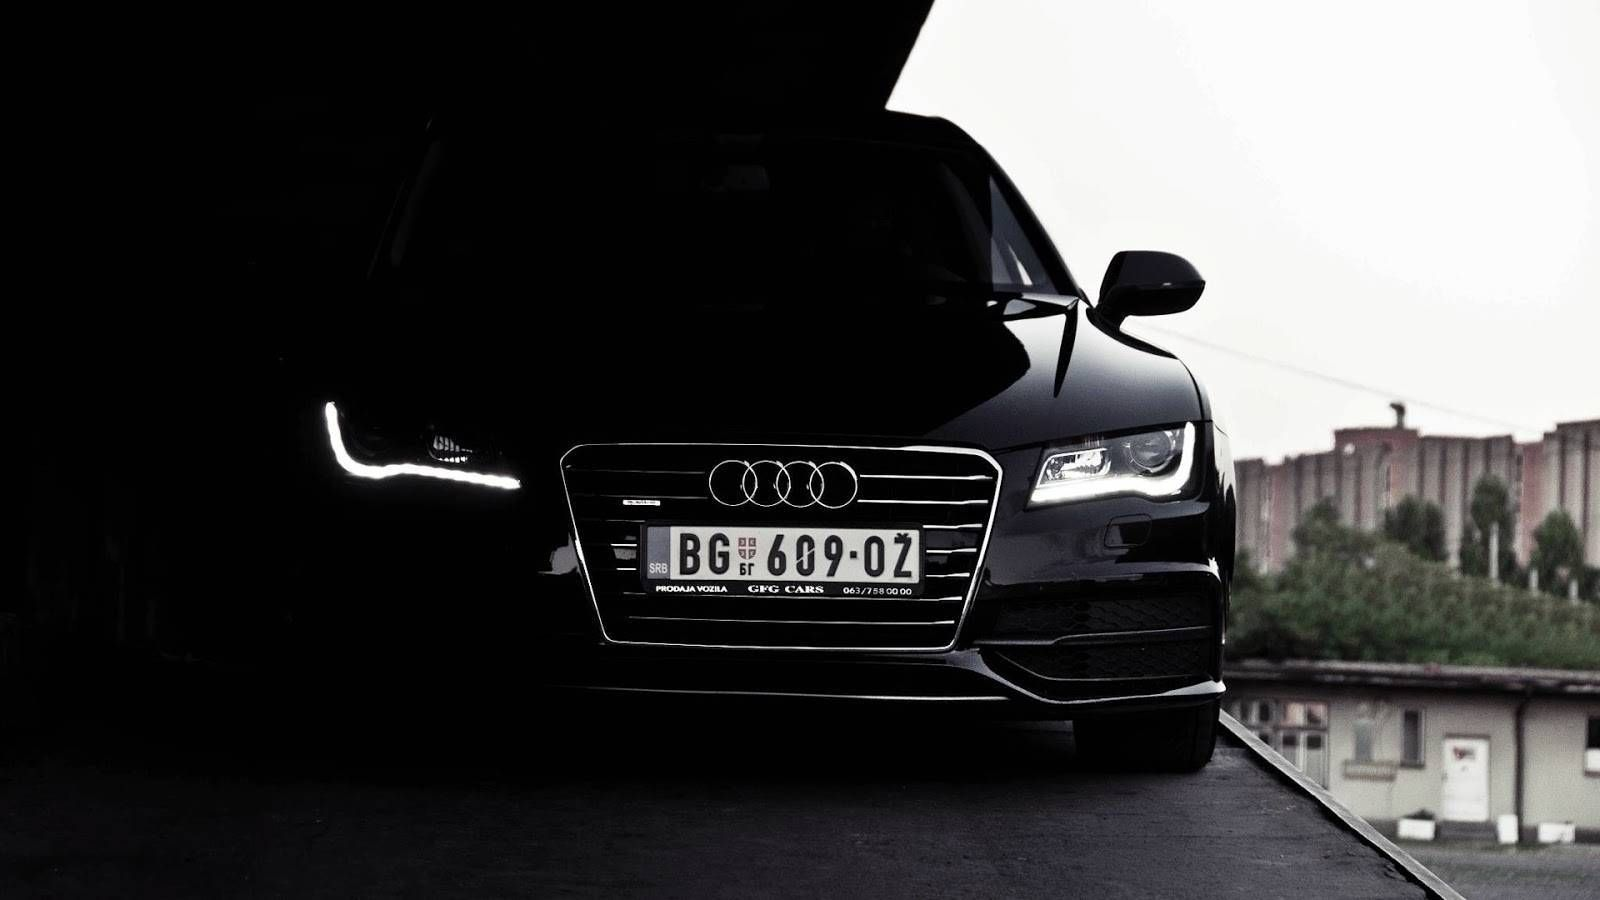 audi a4 hd wallpapers : get free top quality audi a4 hd wallpapers